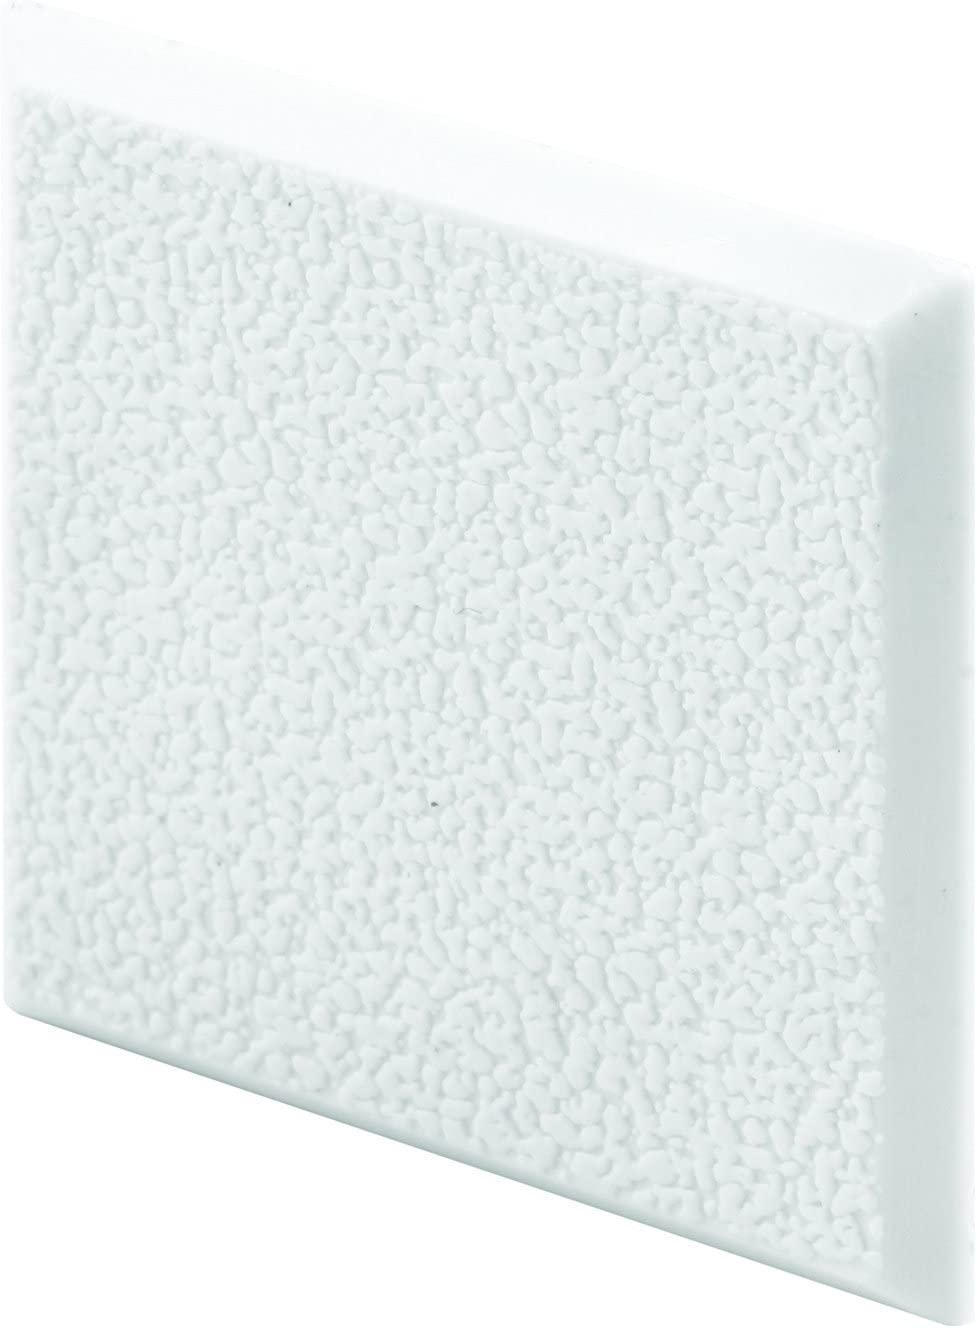 Prime-Line Products MP10866 Wall Protector, 2 in. x 2 in. Squares, Rigid Vinyl, White, Textured, Adhesive-Backed, Paintable, Pack of 5